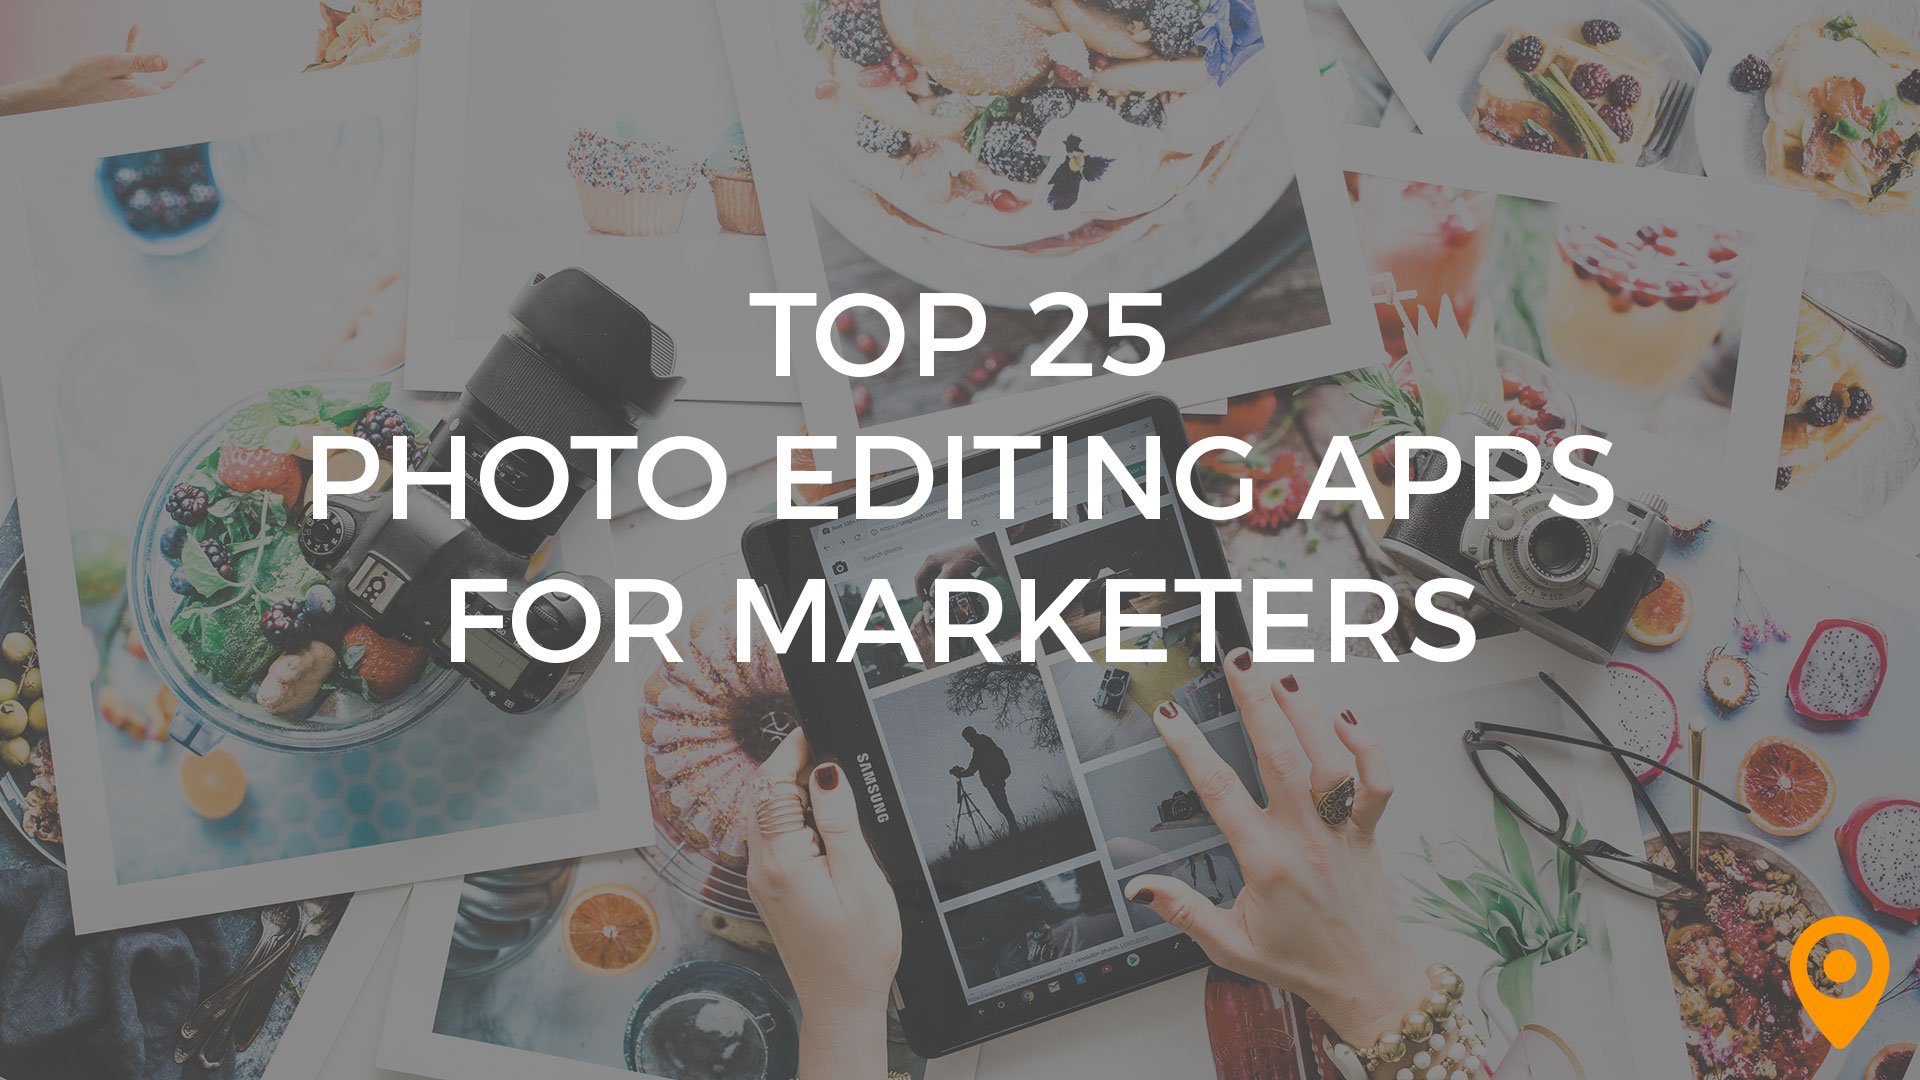 Calligraphy Photo Editor Online Top 25 Photo Editing Apps For Marketers Upcity